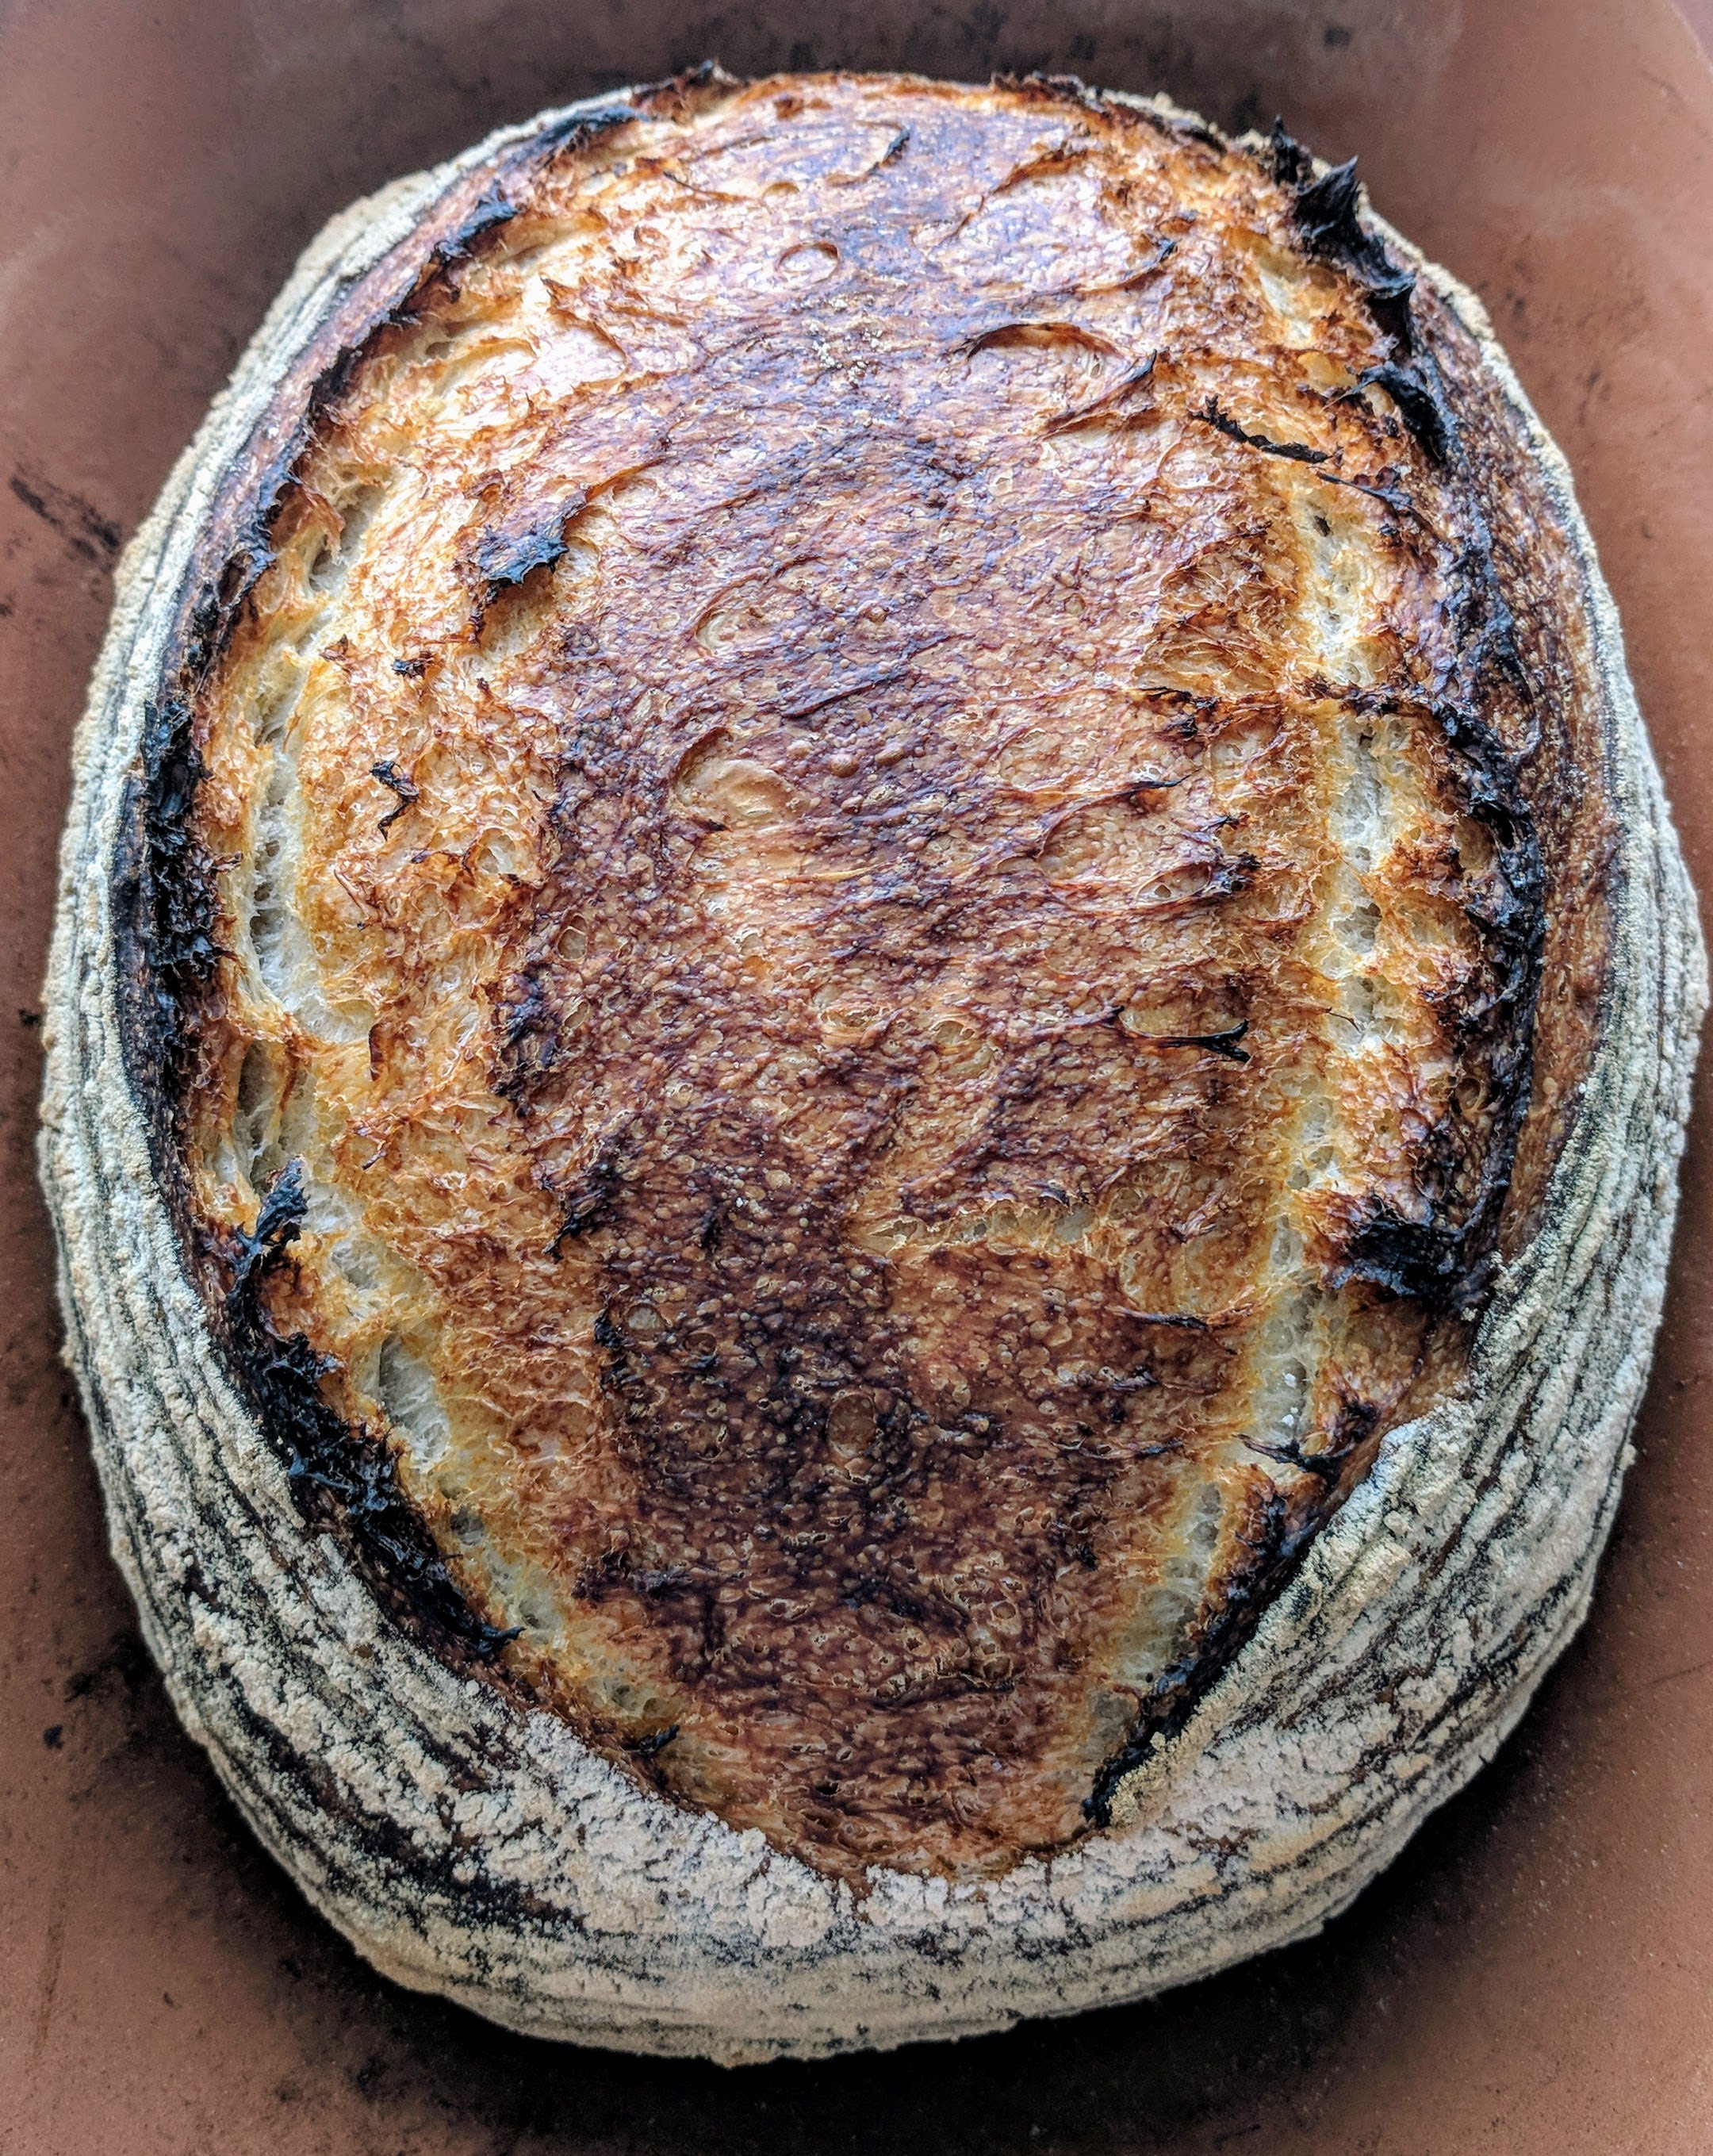 Plain Sourdough  - Simply delicious, and deliciously simple, plain sourdough with nothing added - just four ingredients. Moist with a mild flavor, this bread works well with everything - from PB&J to an olive oil dipper, to burger bun, it's always the right choice. $7 per whole loaf